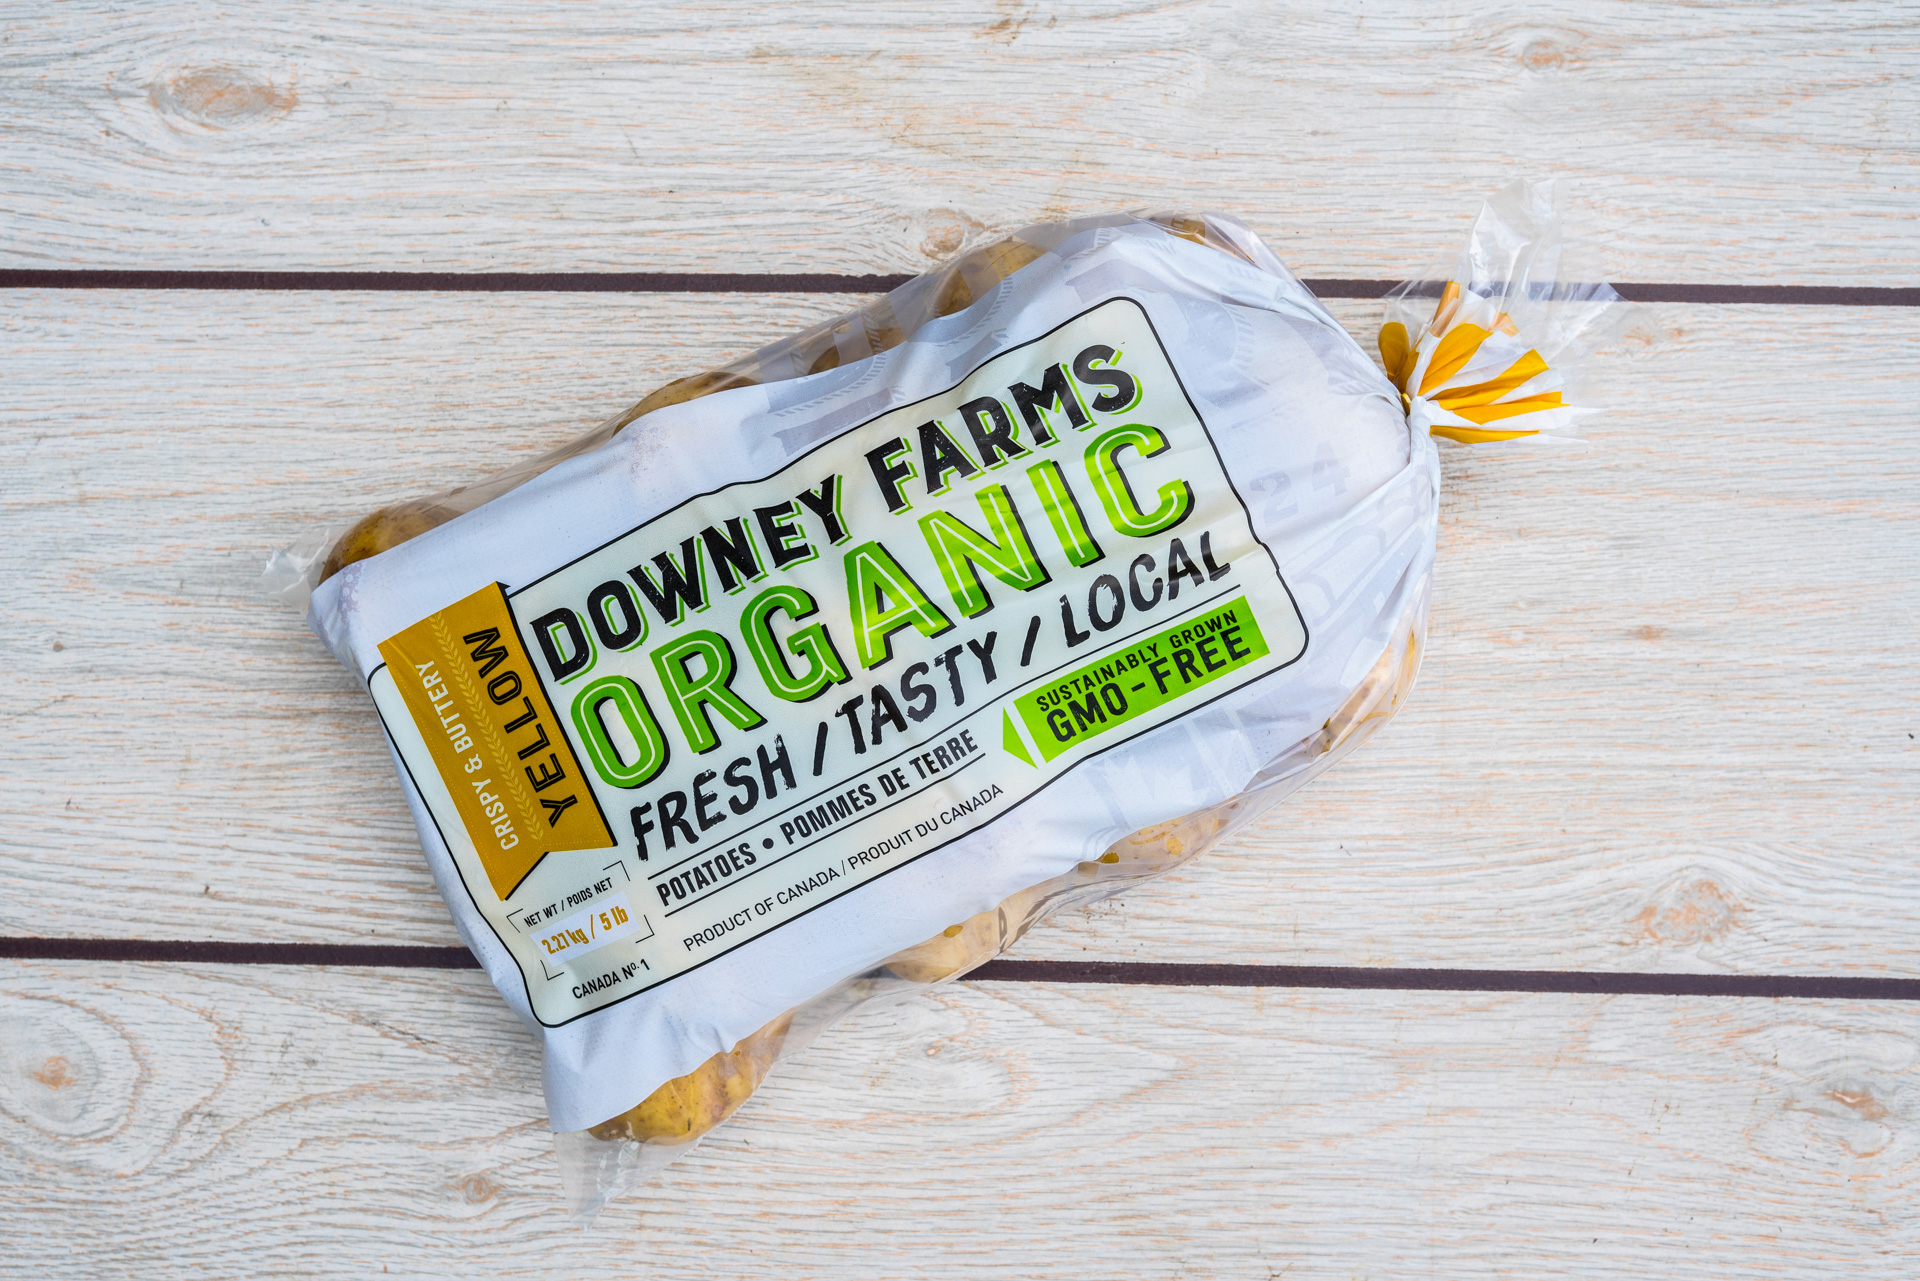 Downey Farms Organic Yellow Potatoes package design. GMO free potatoes.